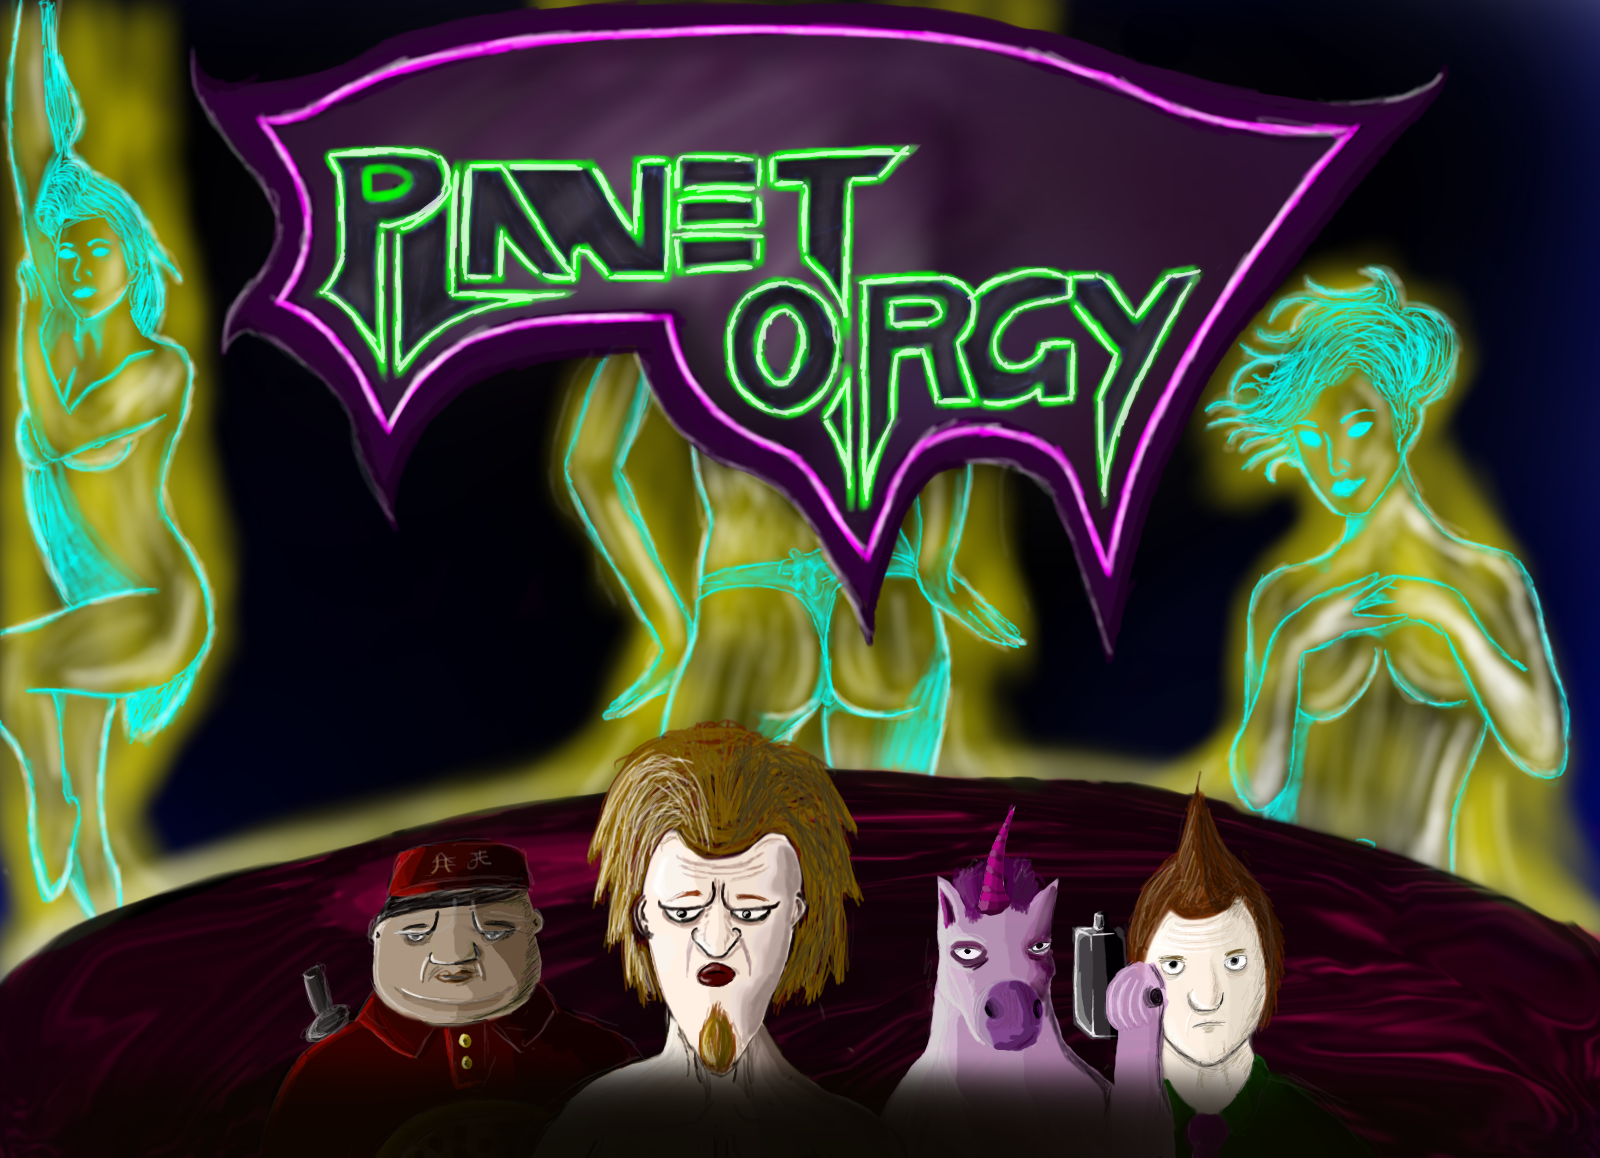 Planet Orgy poster